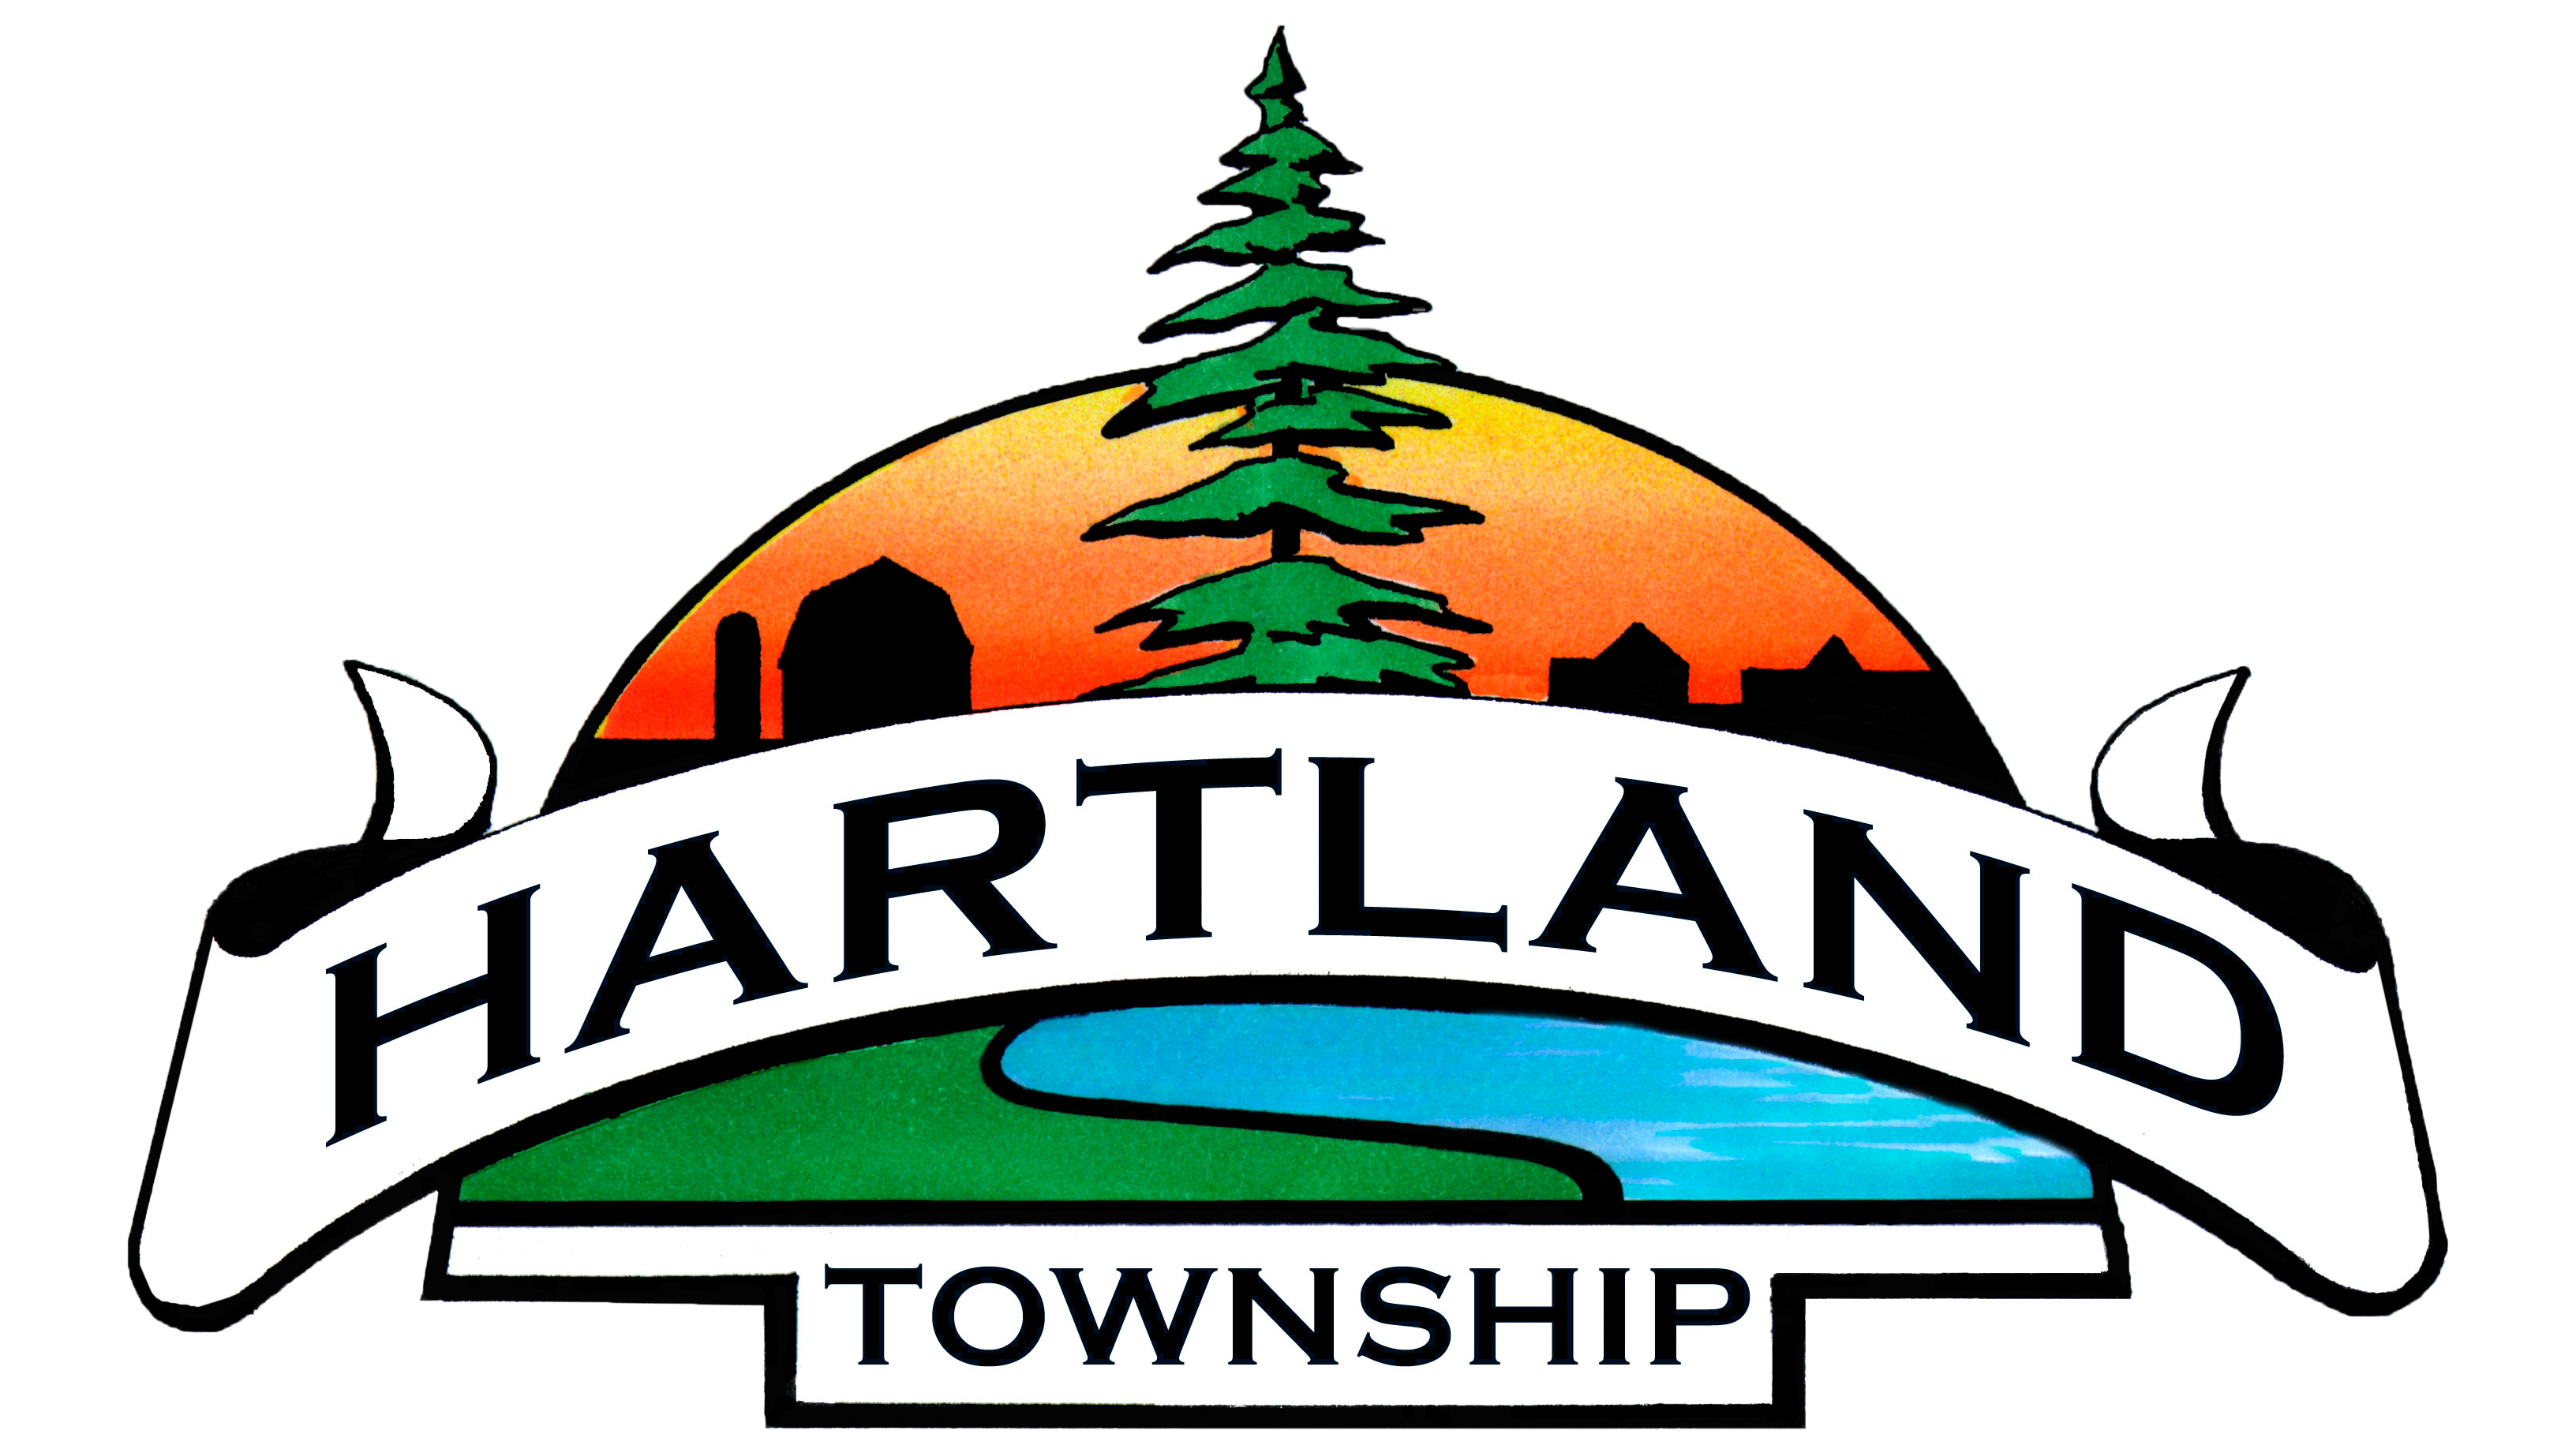 Hartland Township Seeking to Fill an Opening on the Planning Commission